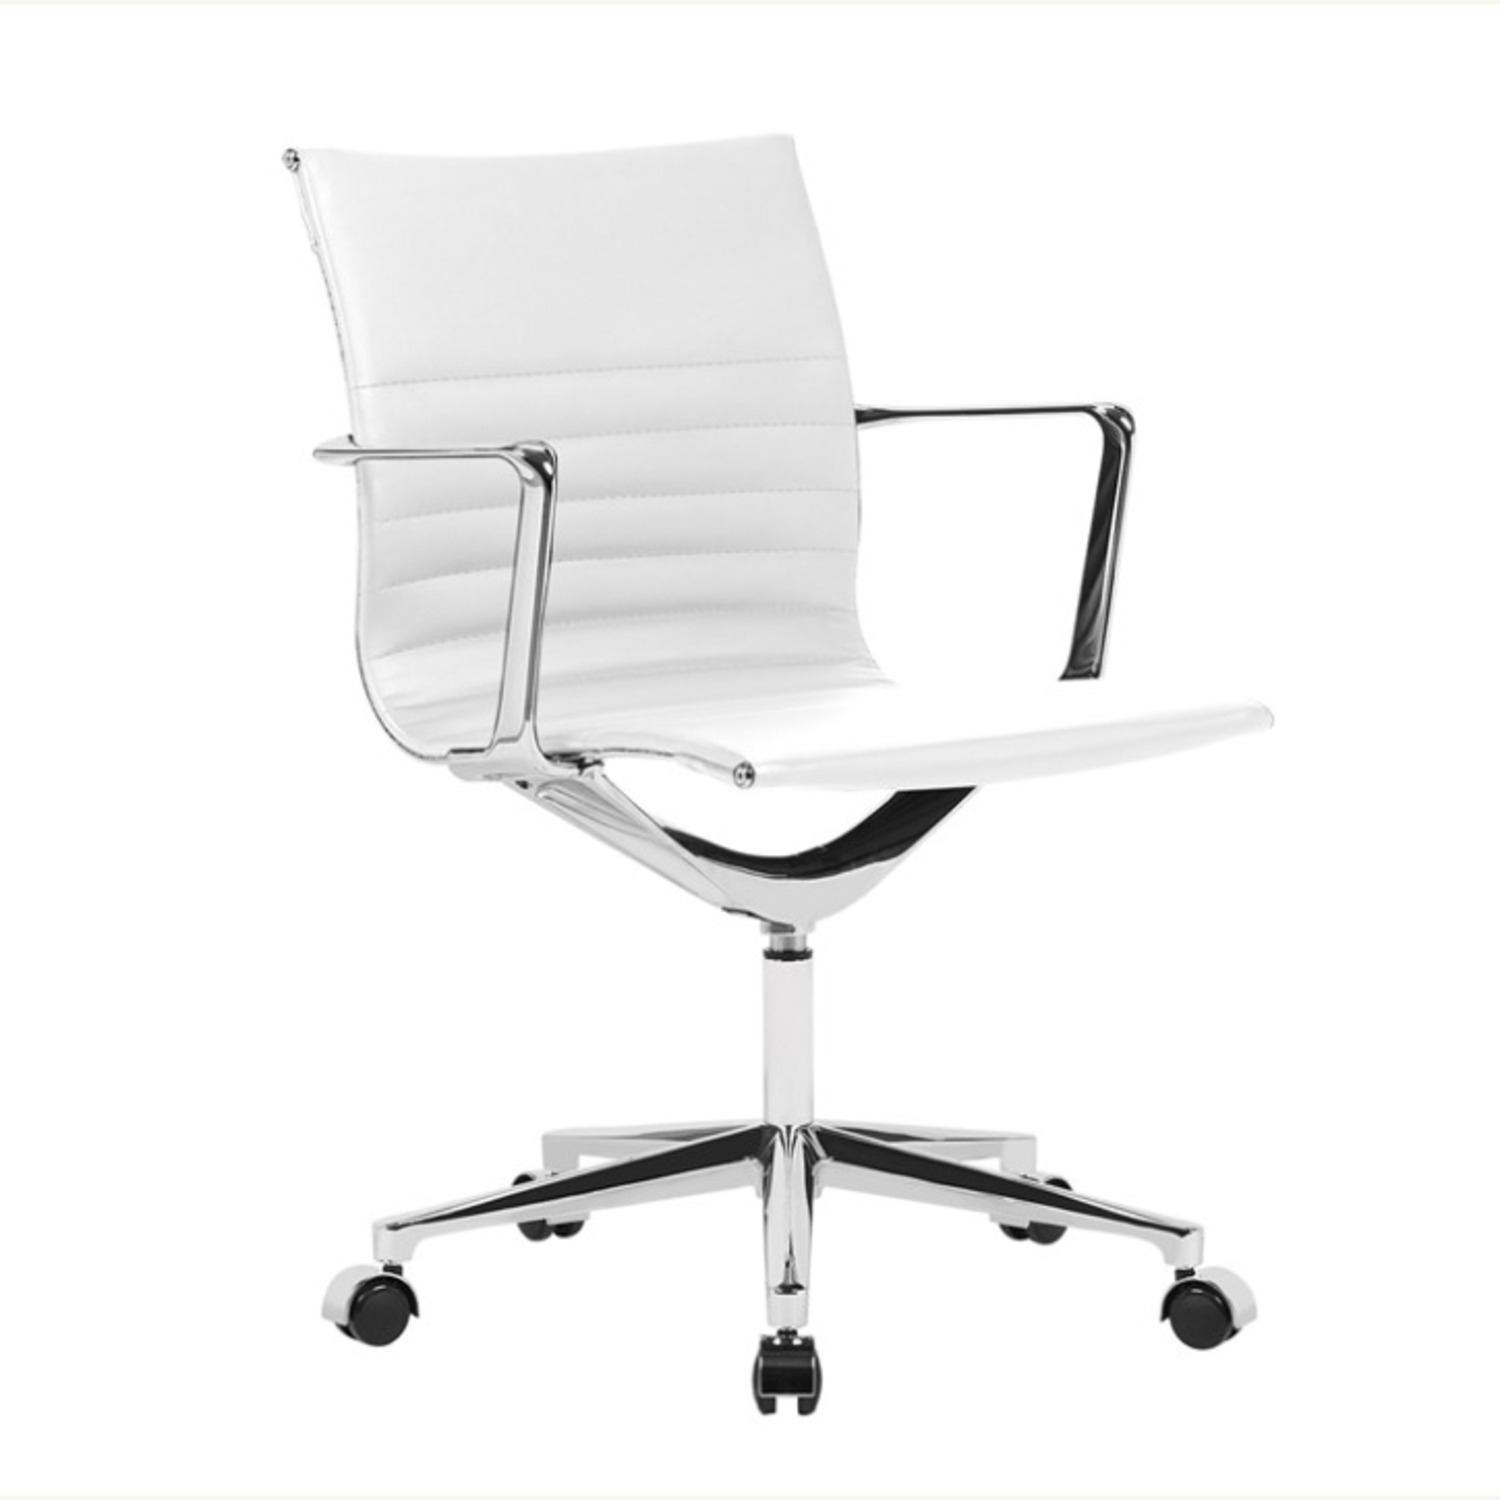 Office Chair In Mid Back W/ White Leatherette - image-2